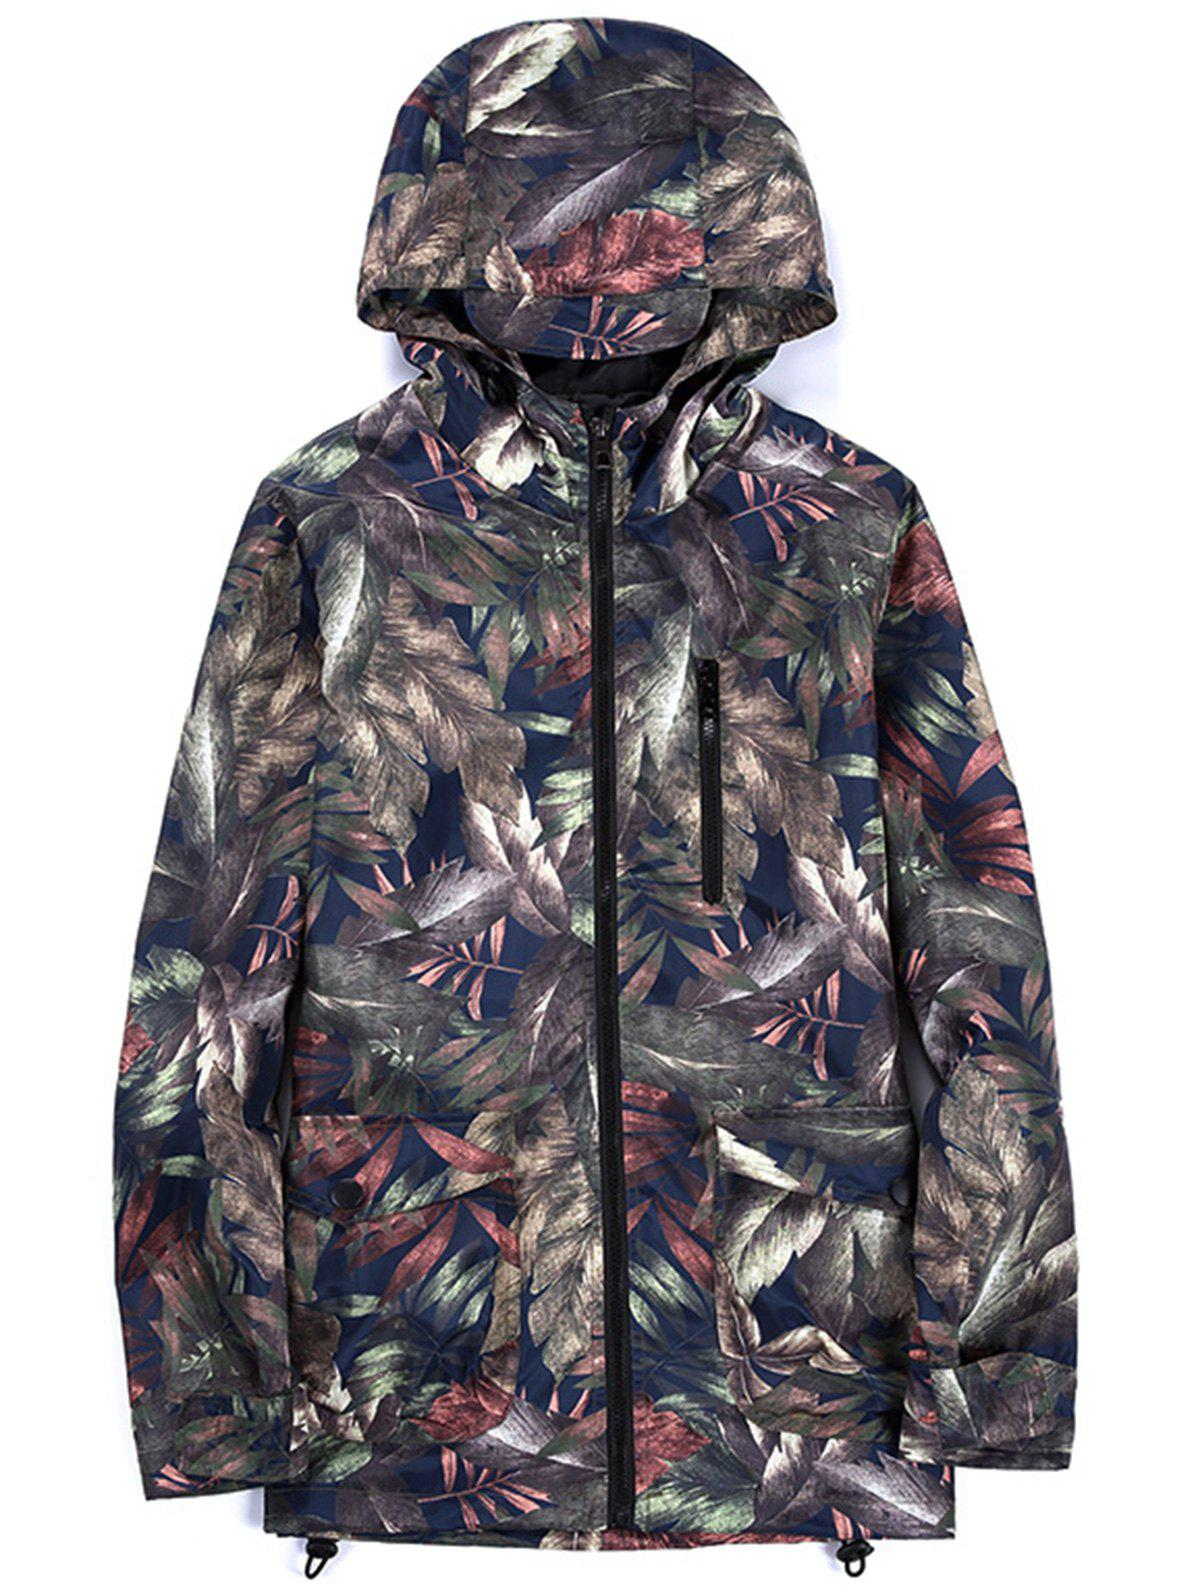 Lightweight Tropical Leaves Print Windbreaker JacketMEN<br><br>Size: 5XL; Color: COLORMIX; Clothes Type: Jackets; Style: Active,Casual,Fashion,Streetwear; Material: Polyester; Collar: Hooded; Shirt Length: Regular; Sleeve Length: Long Sleeves; Season: Fall,Spring; Closure Type: Zipper; Crafts: Printing; Occasion: Beach,Casual ,Daily Use,Going Out,Sports; Weight: 0.4200kg; Package Contents: 1 x Jacket;